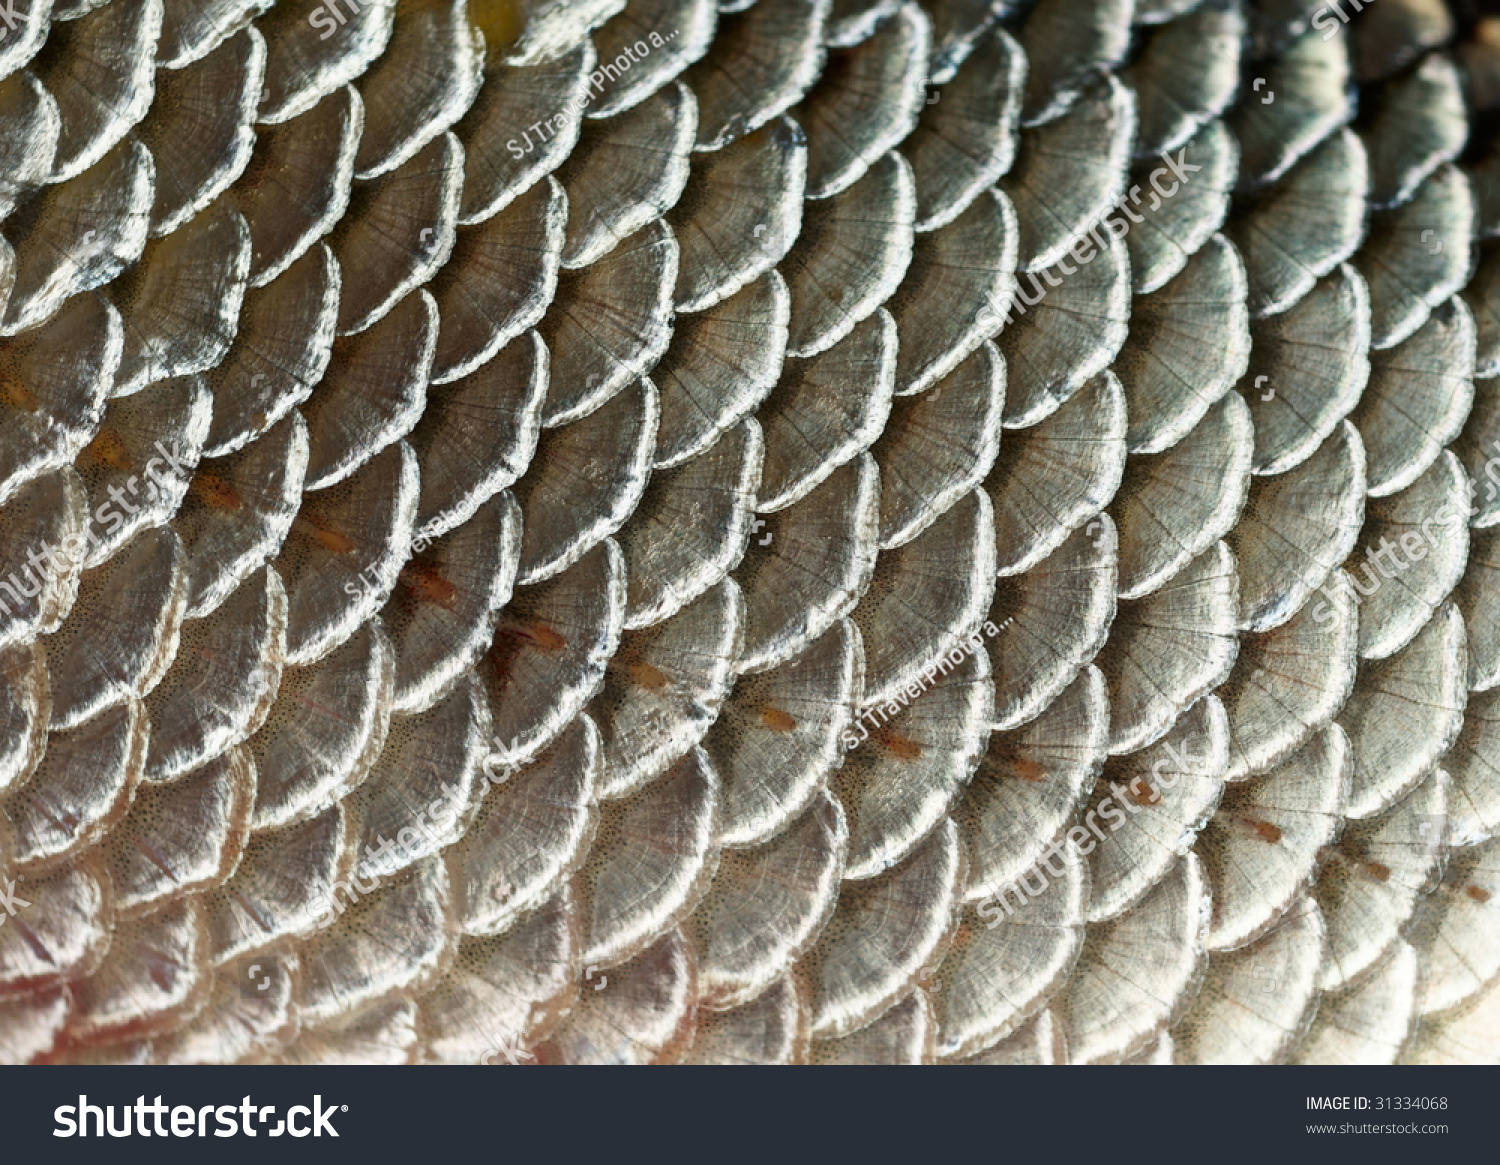 Fish scales background stock photo 31334068 shutterstock for Do all fish have scales